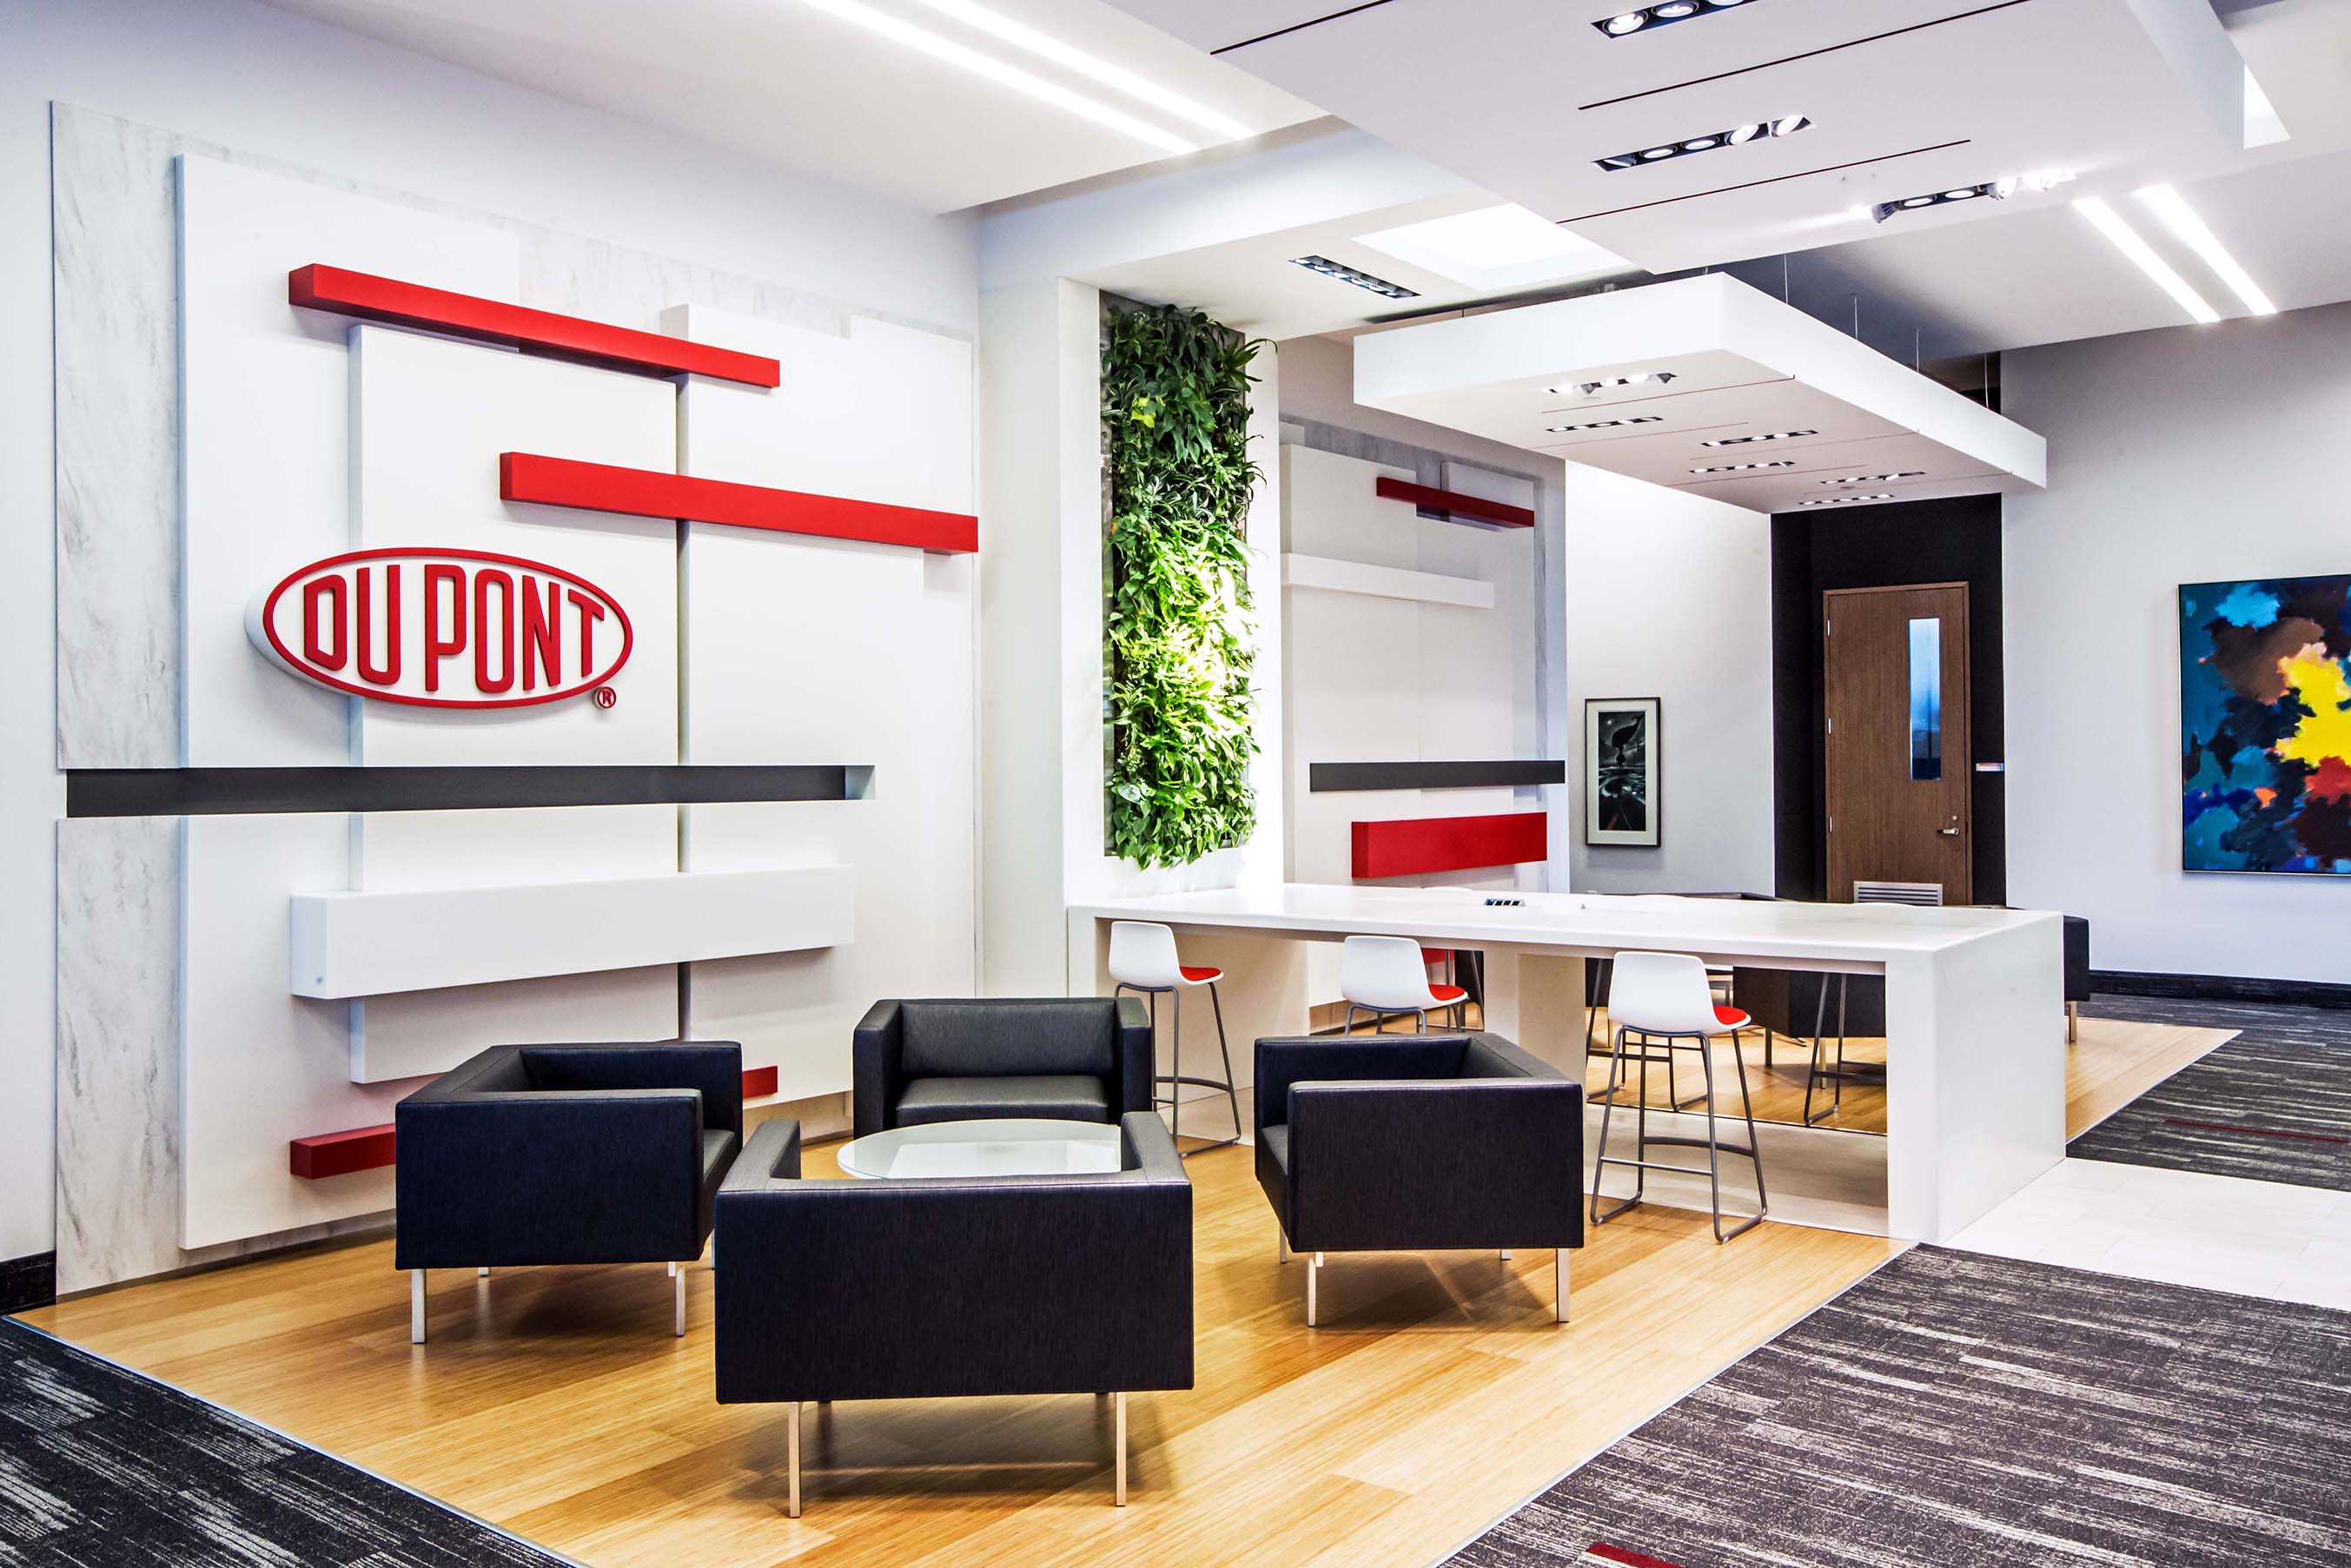 office interior design, corporate interior design, office brand design, facility management, office interior design toronto, office brand design toronto, office planning, workspace branding, commercial interior design, office redesign